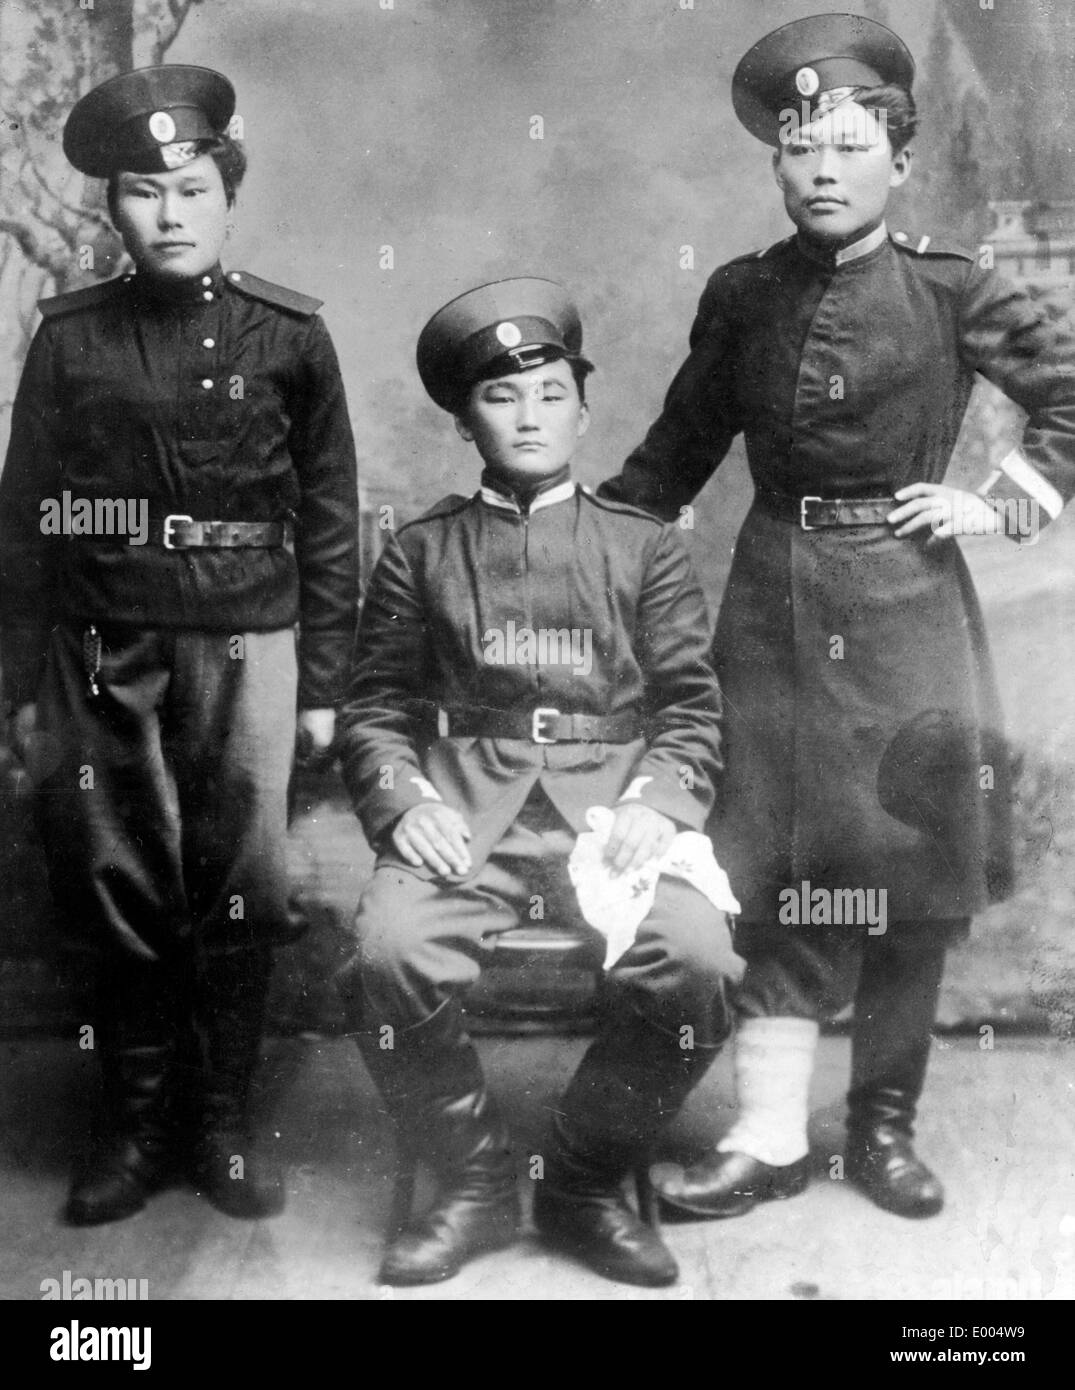 Kalmyk soldiers from Western Mongolia, 1914 - Stock Image